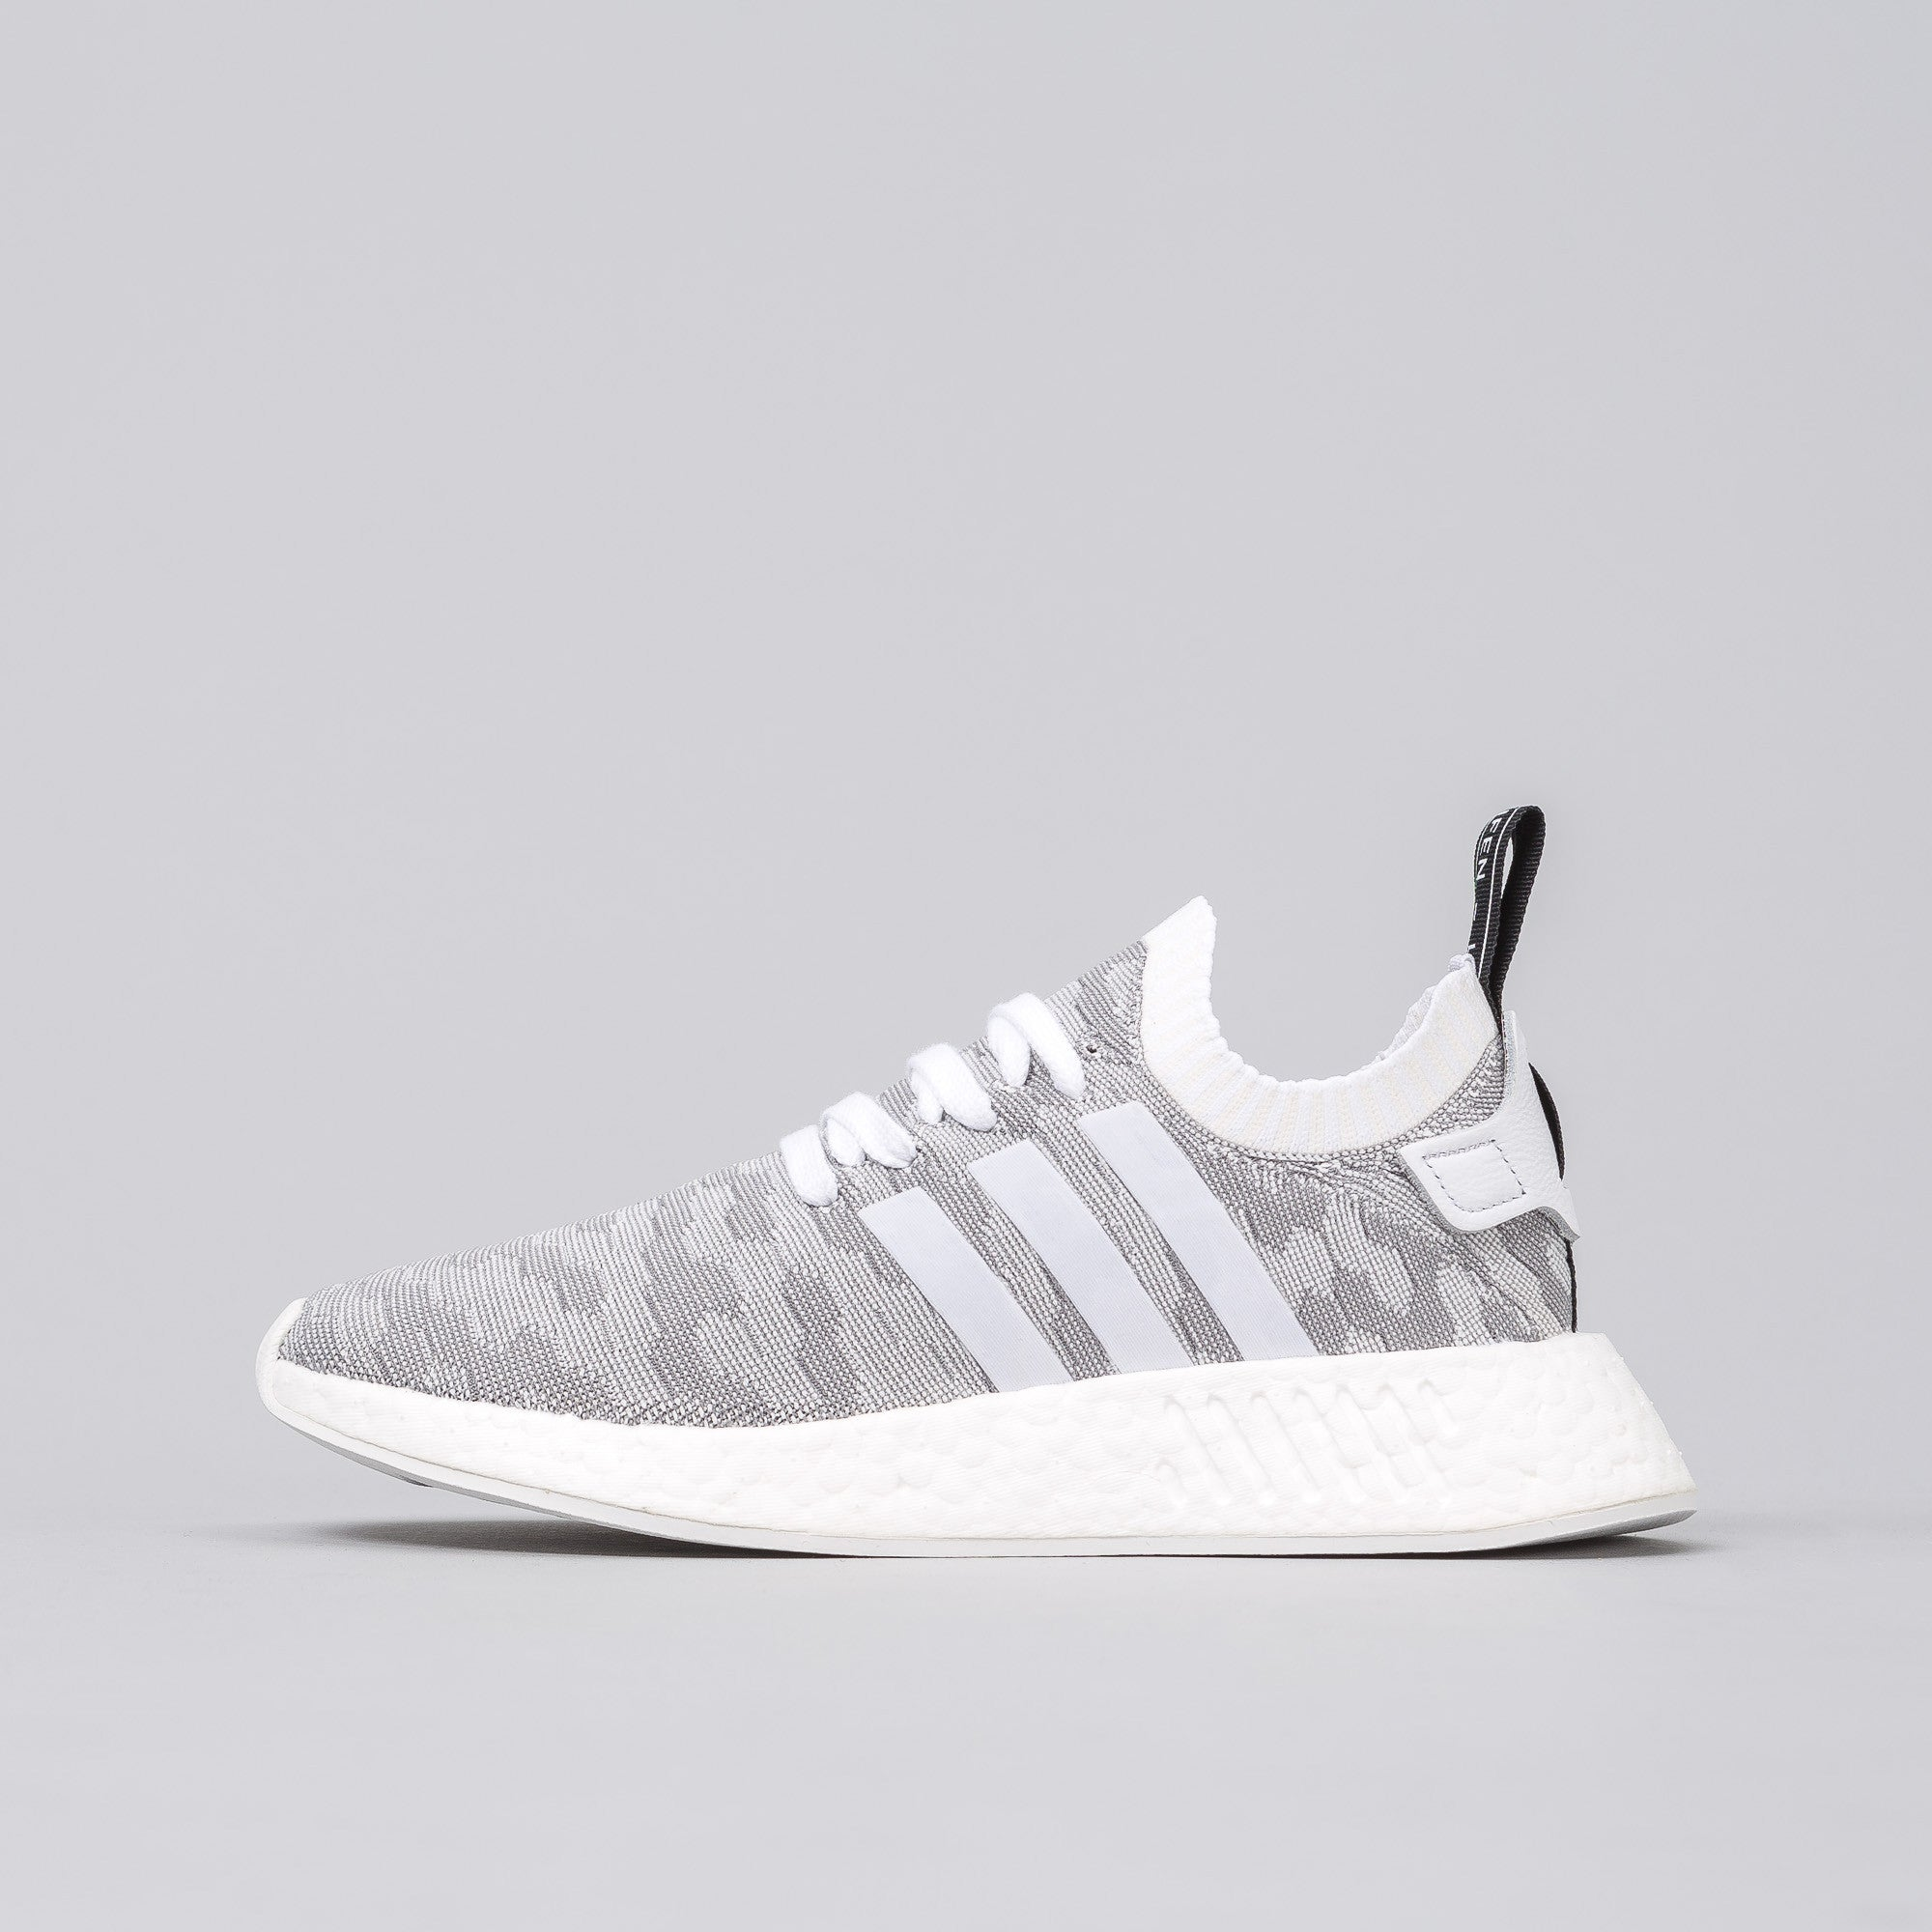 bb215ab1d ADIDAS NMD R2 BLACK WHITE FUTURE HARVEST. Find great deals for adidas  Originals NMD R2 PK W Primeknit Boost Grey Pink Women Running Shoe BY9520  ...